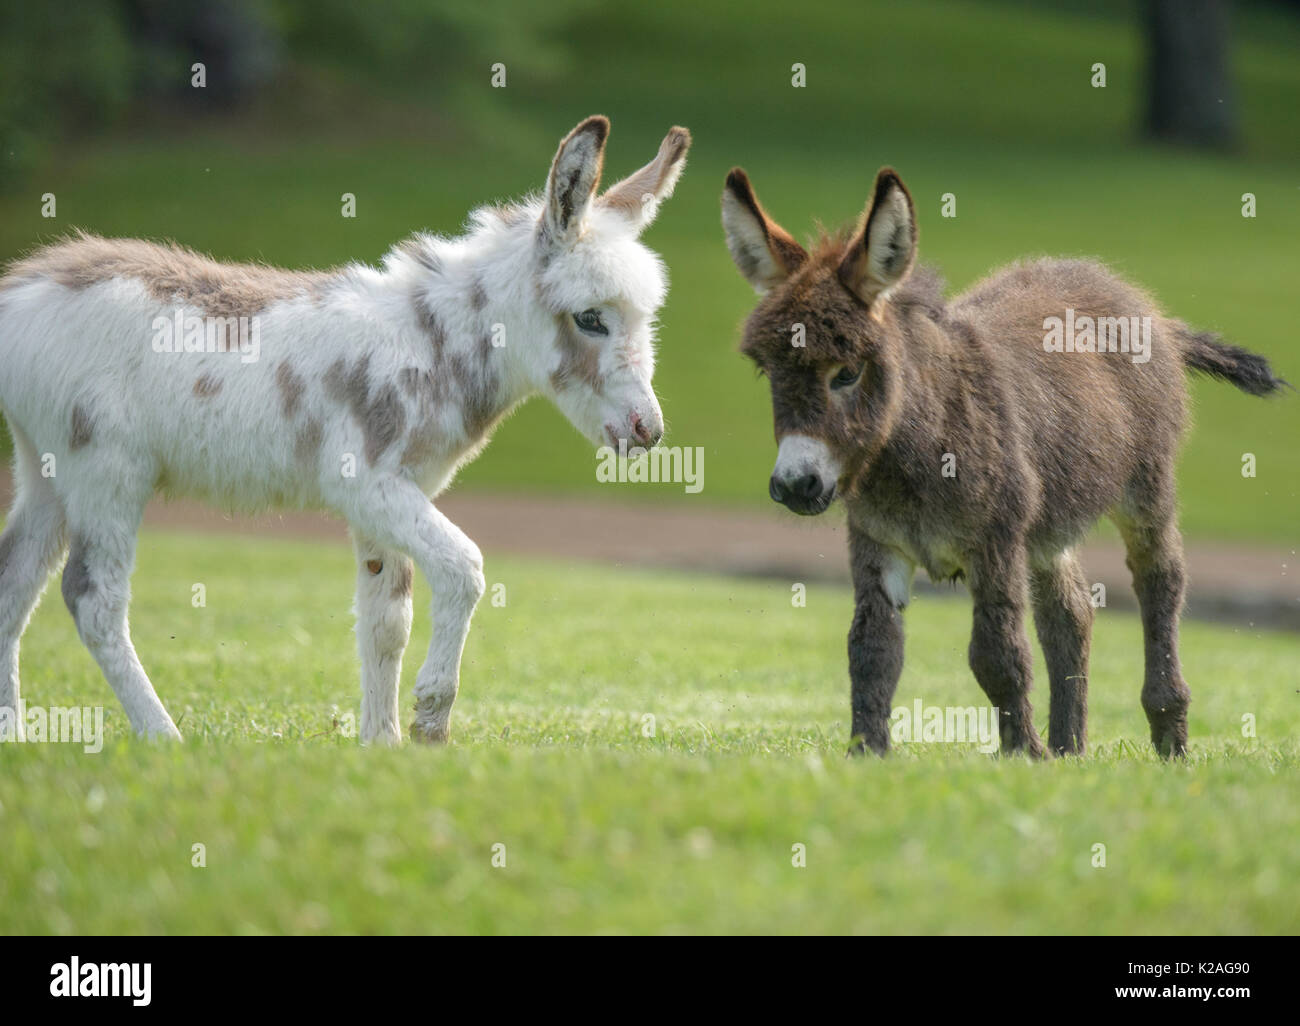 Two Miniature donkey foals on lush green lawn - Stock Image